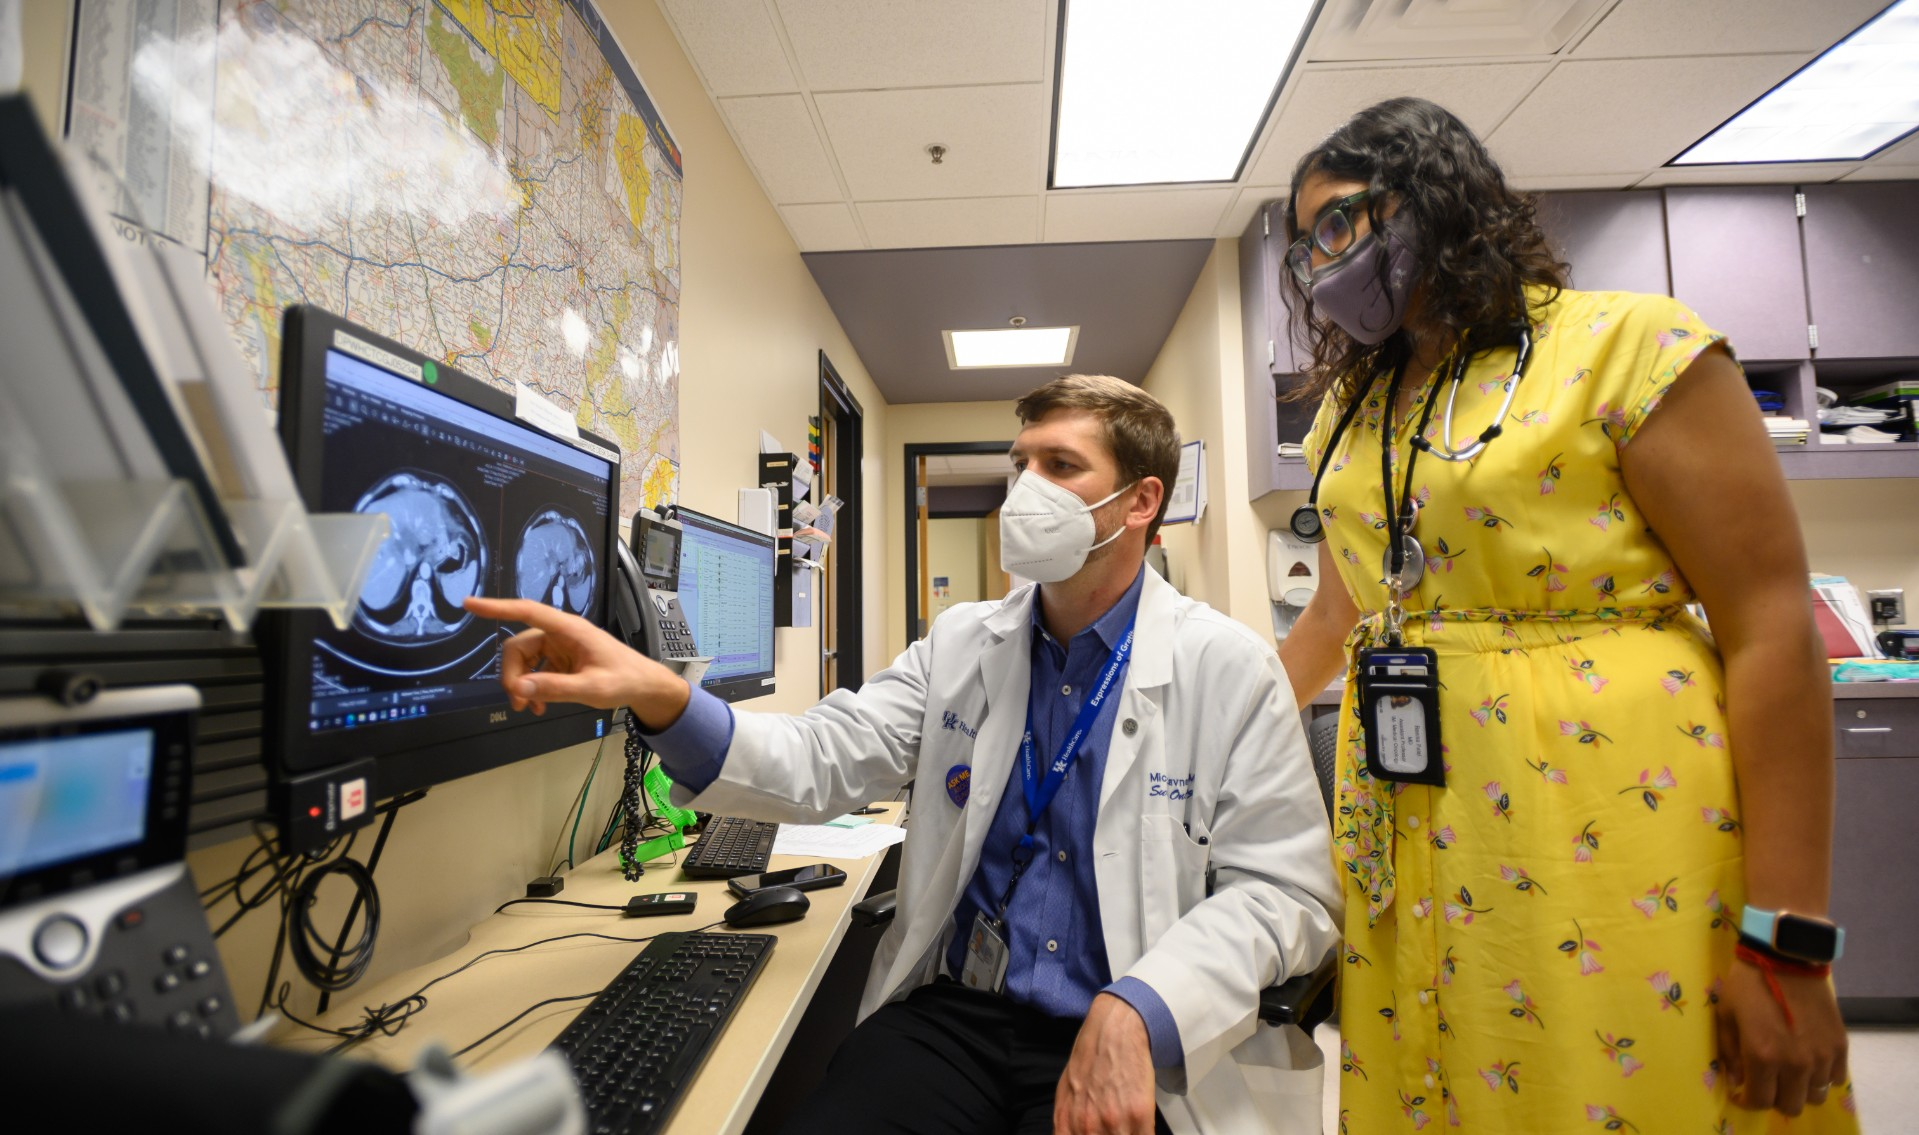 Dr. Michael Cavnar, an adult white man with brunette hair and white hairs peppered in his beard, analyzes Kathy's scans alongside Dr. Reema Patel, a young South Asian woman with curly black hair. Dr. Cavnar is wearing a white lab coat over a blue button-up shirt, and a face mask. Dr. Patel is wearing a yellow floral dress, her credentials and stethoscope around her neck, a pair of green-framed glasses, and a face mask.